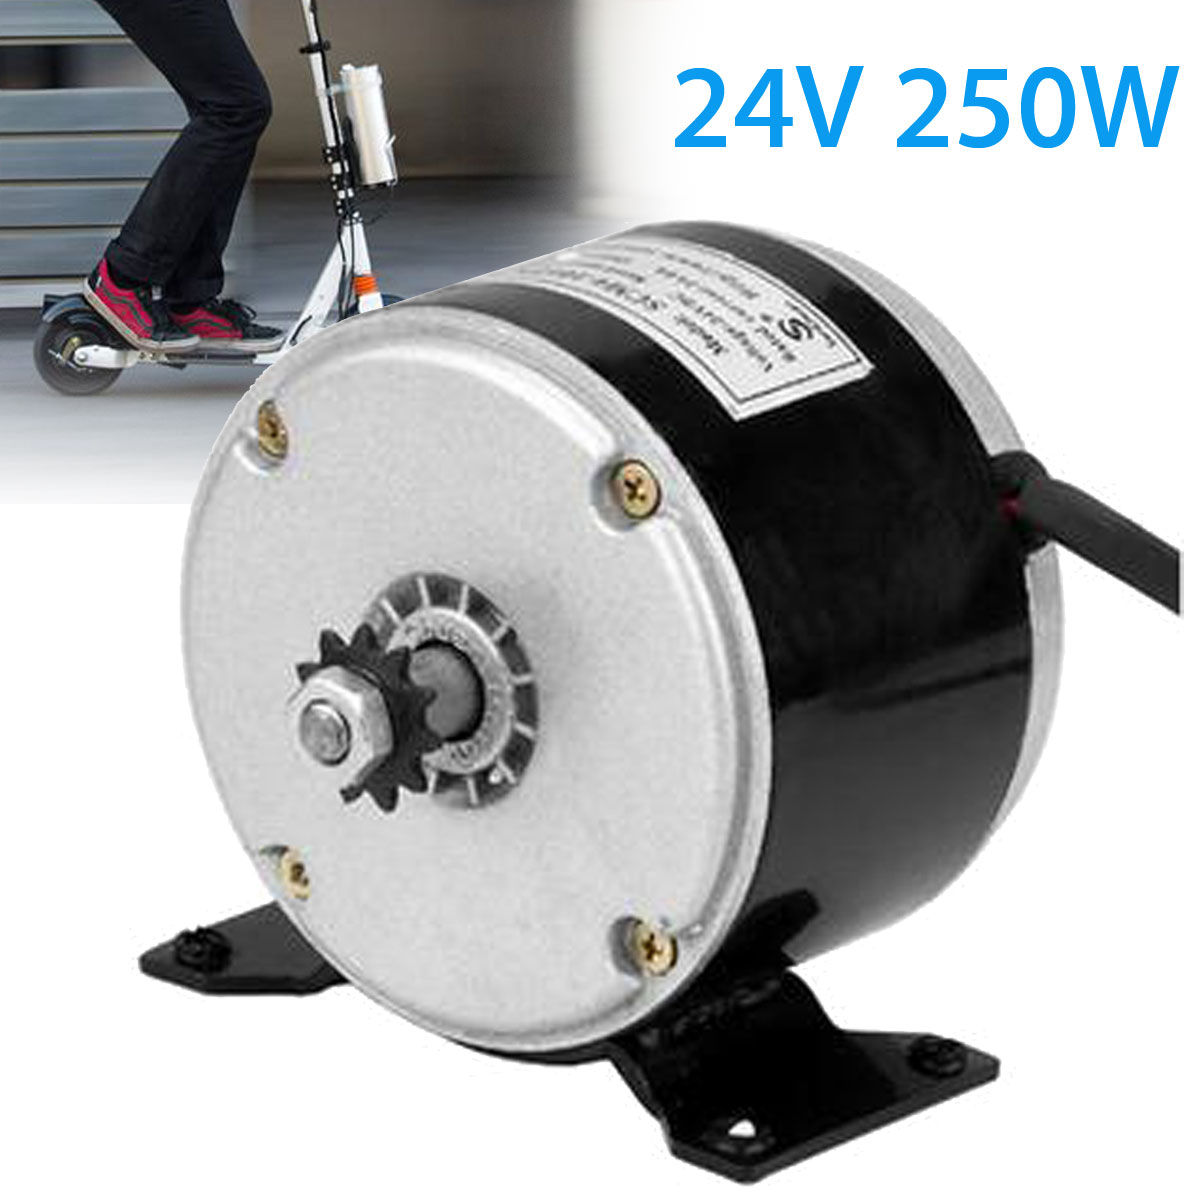 High Quality Brand New 24V 250W DIY Motor Permanent Magnet Generator For Micro Motor PMA